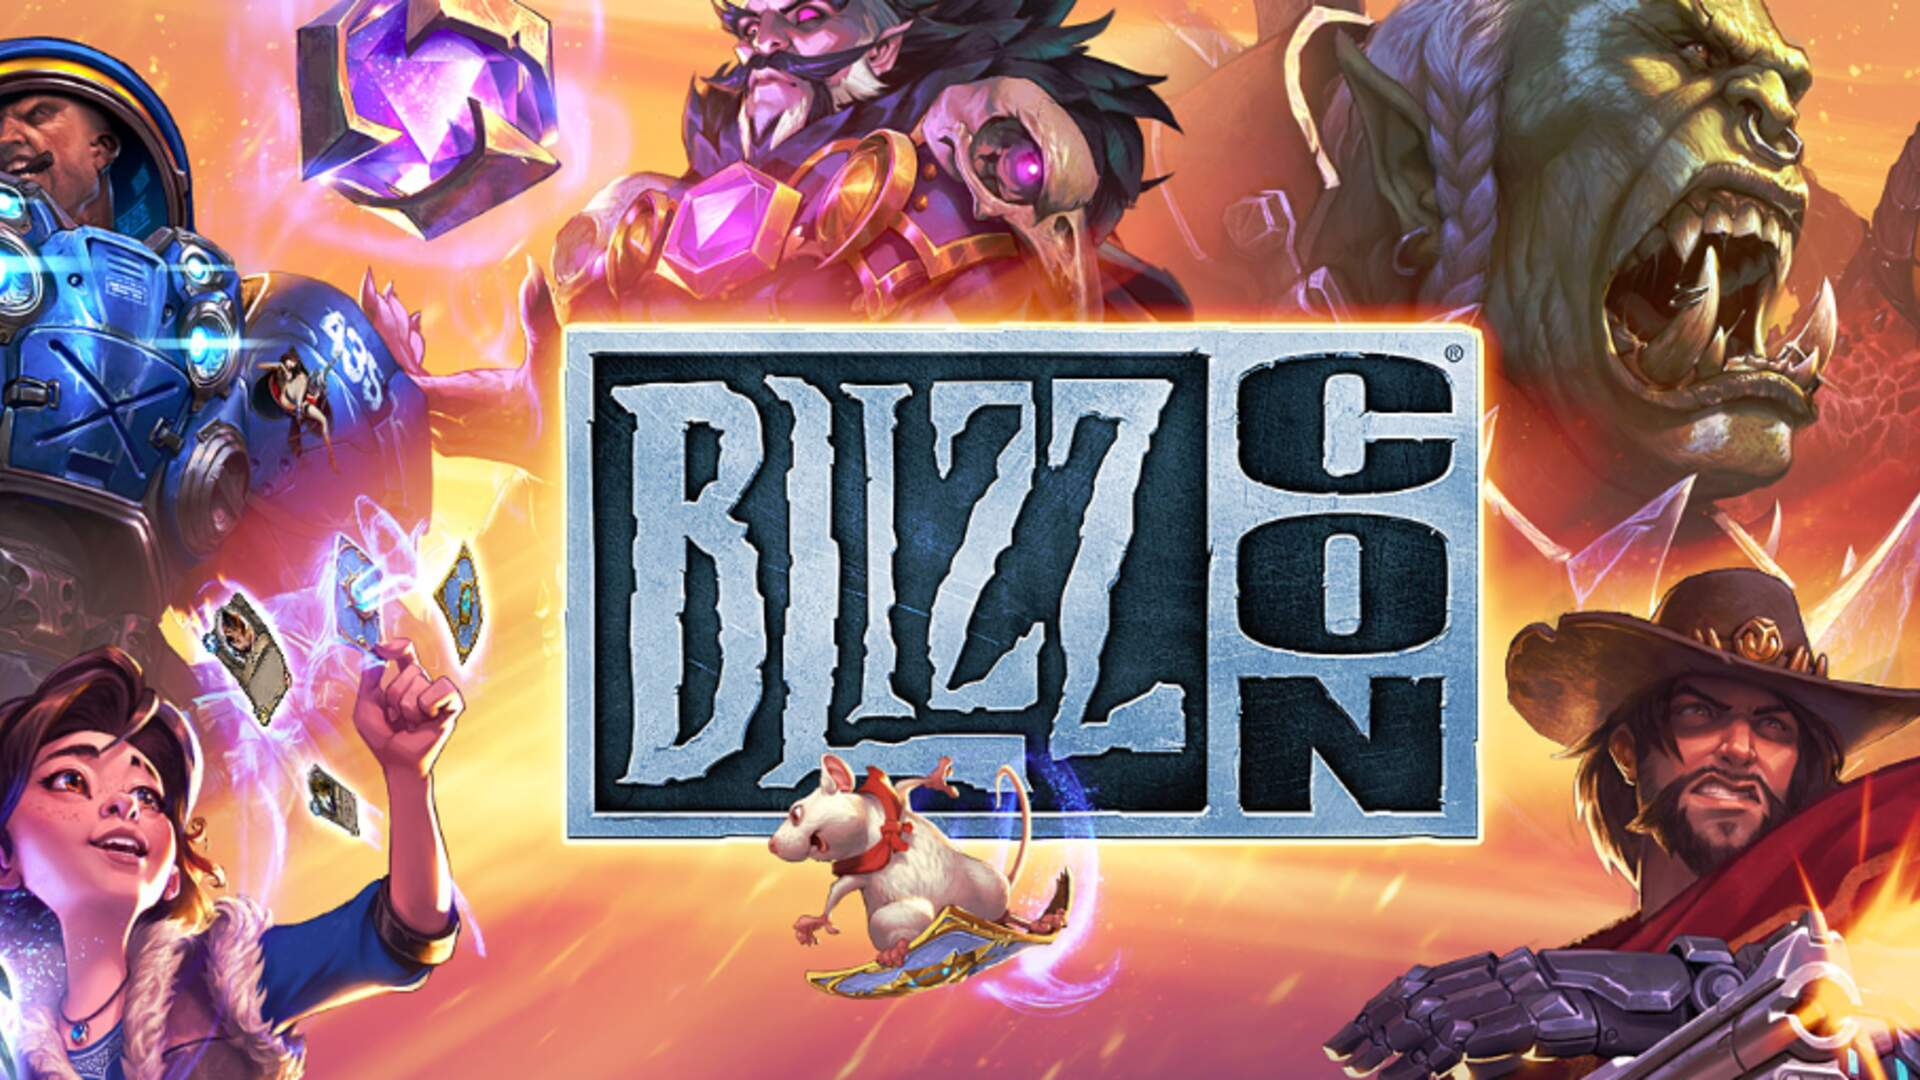 BlizzCon Virtual Ticket Available Now, Comes With Legendary Overwatch Skin Based on Diablo 3